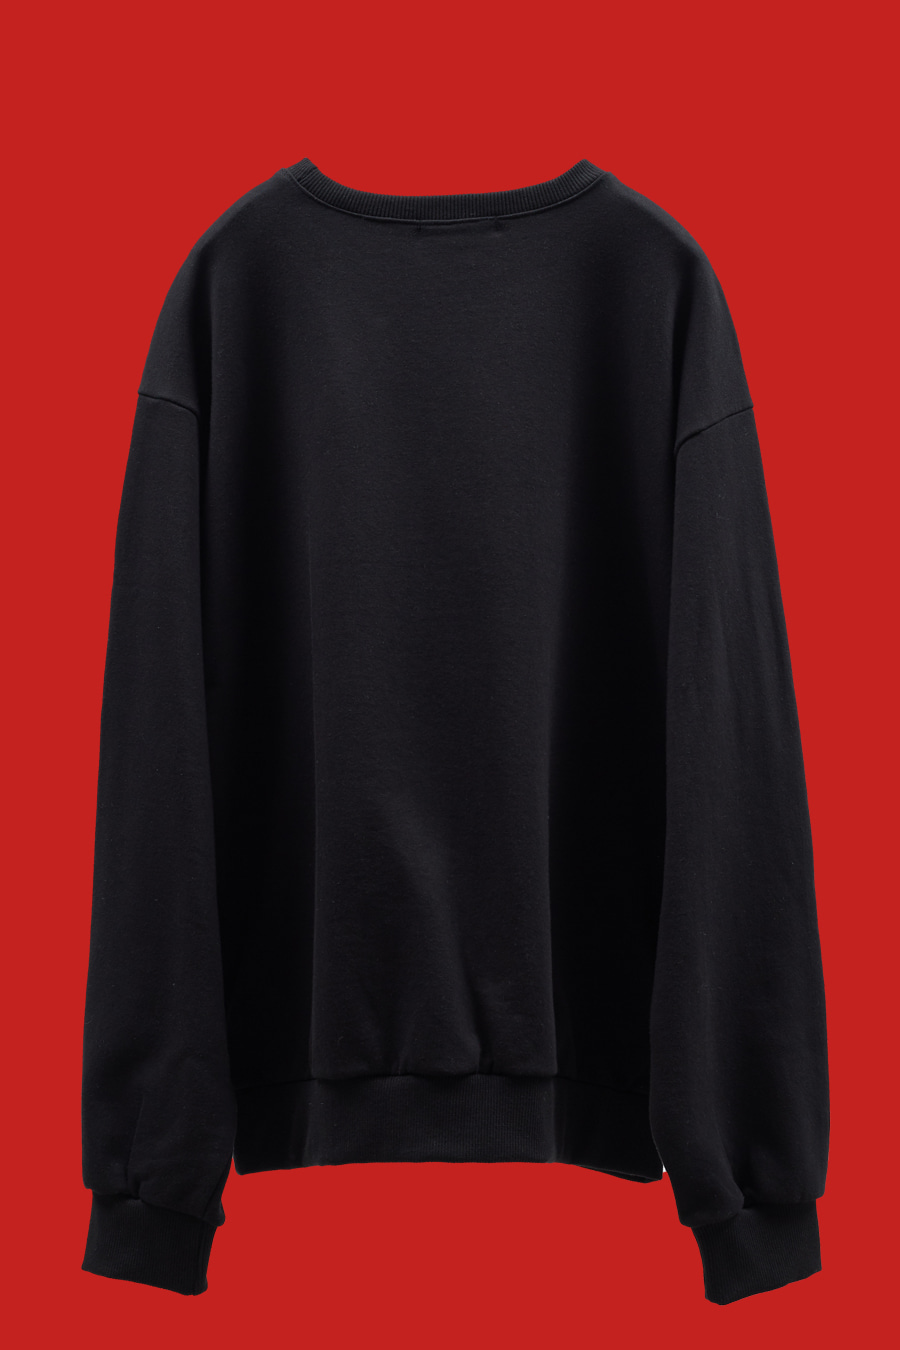 20S/S Signature Logo Sweatshirt - Black